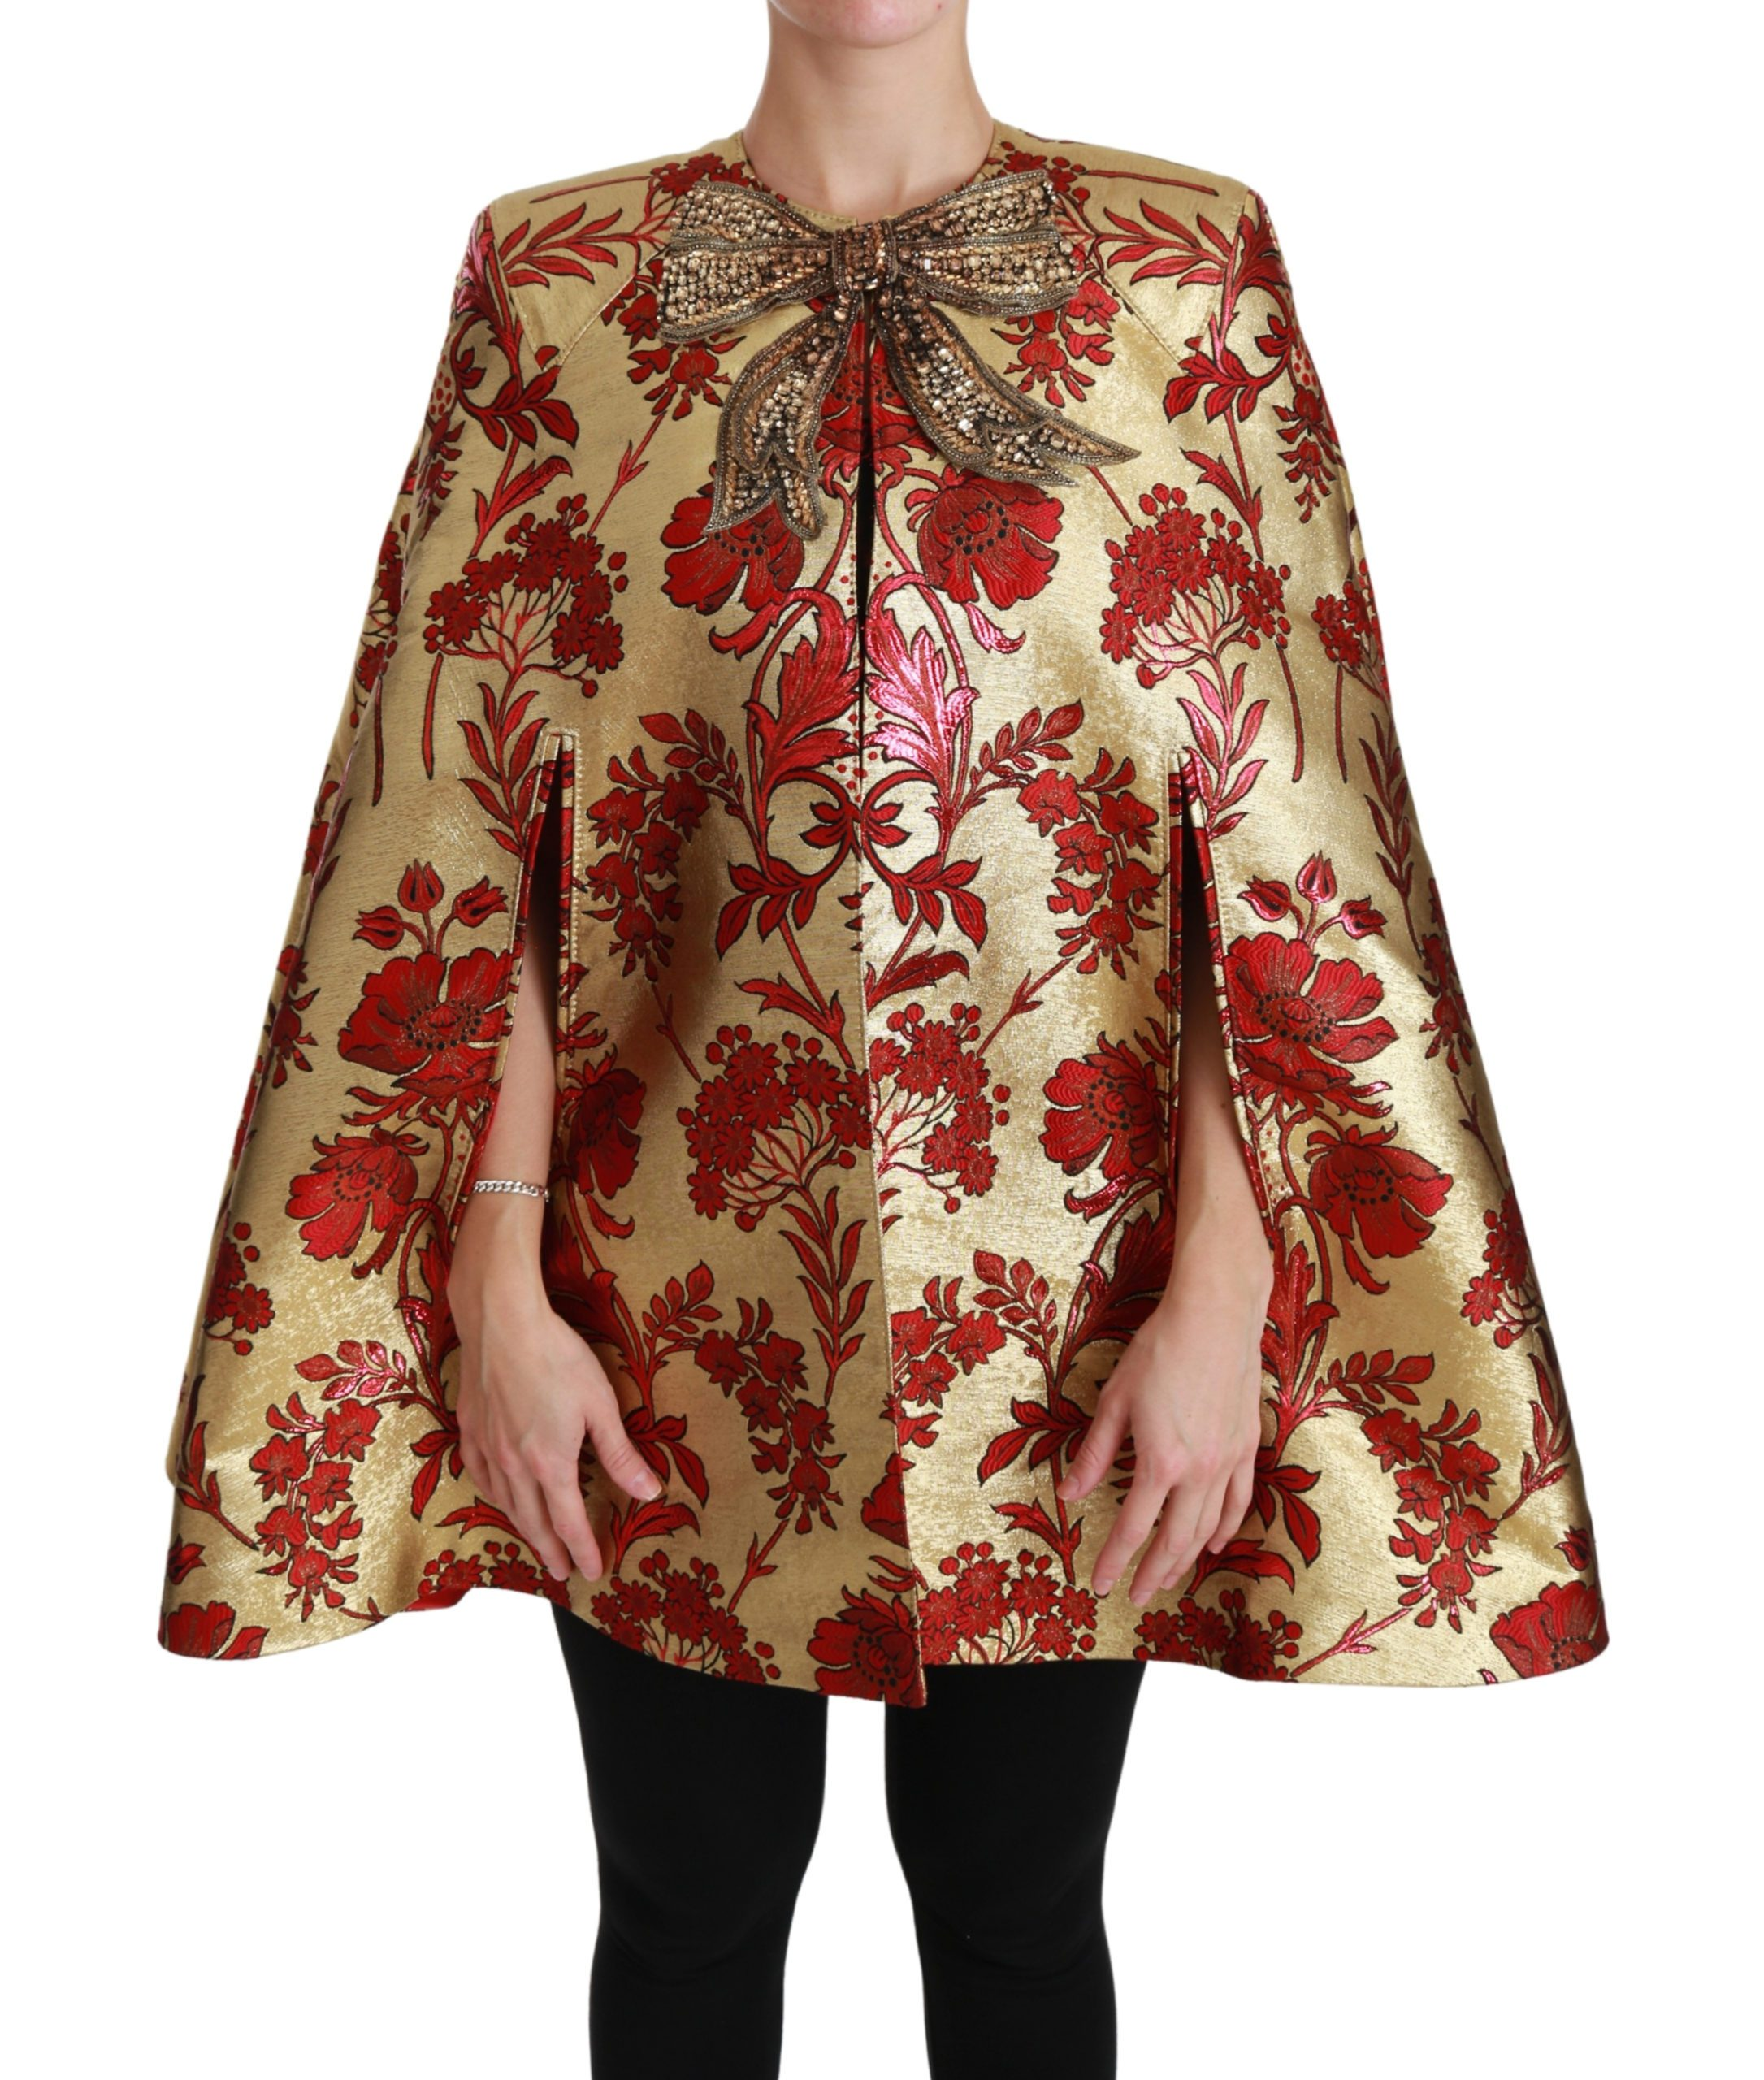 Dolce & Gabbana Women's Floral Crystal Bow Coat Cape Jacket Red JKT2574 - IT40|S